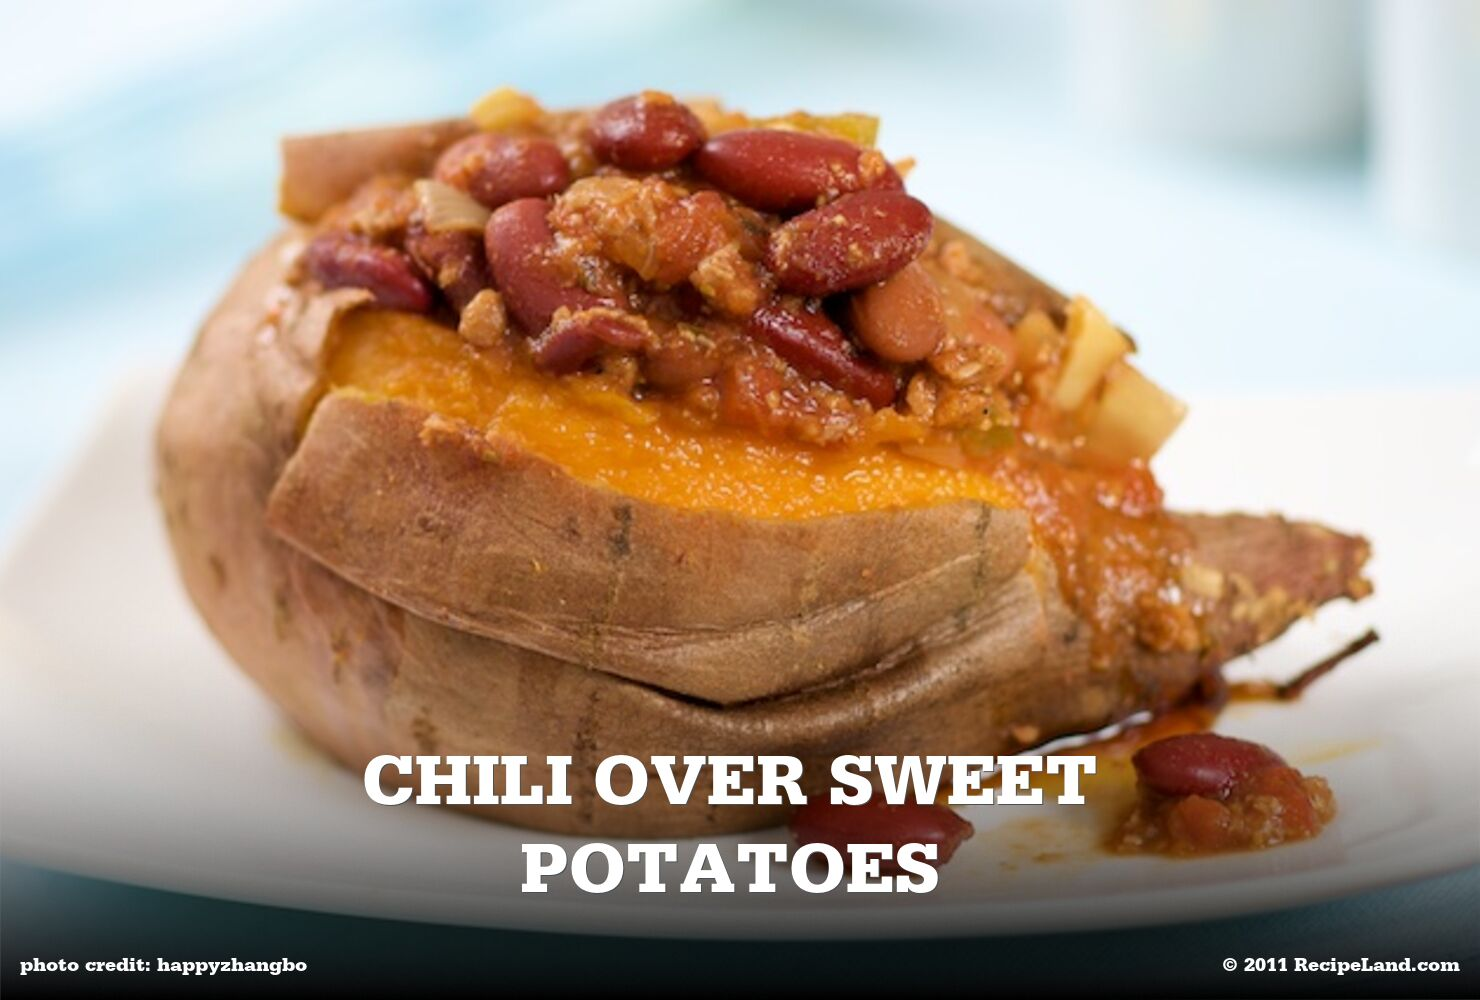 Chili Over Sweet Potatoes